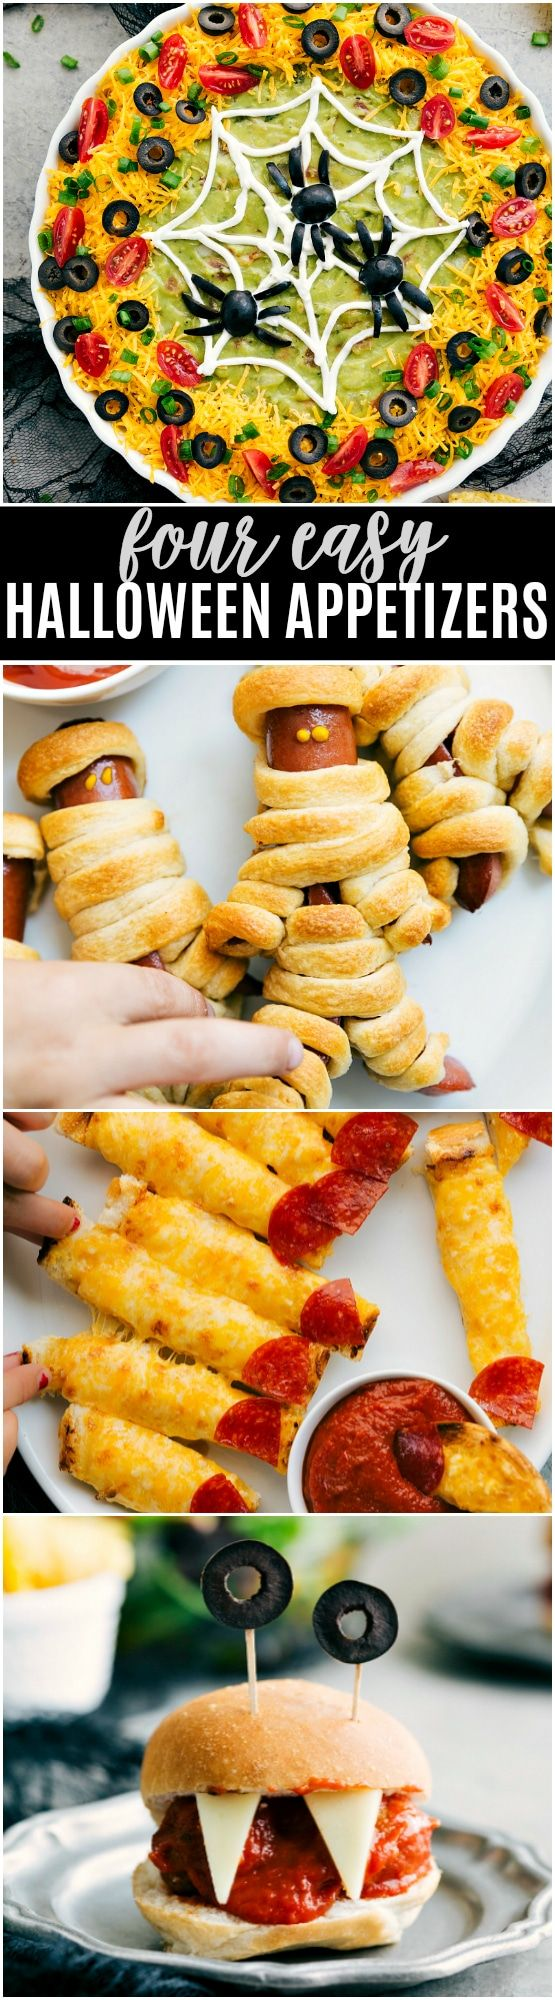 Four easy, & creative Halloween appetizers that are so delicious -- Spiderweb 7-Layer Dip, Walking Dead Mummy Dogs, Monster Meatball Sliders, & Cheesy Monster Fingernail Bread. via chelseasmessyapron.com